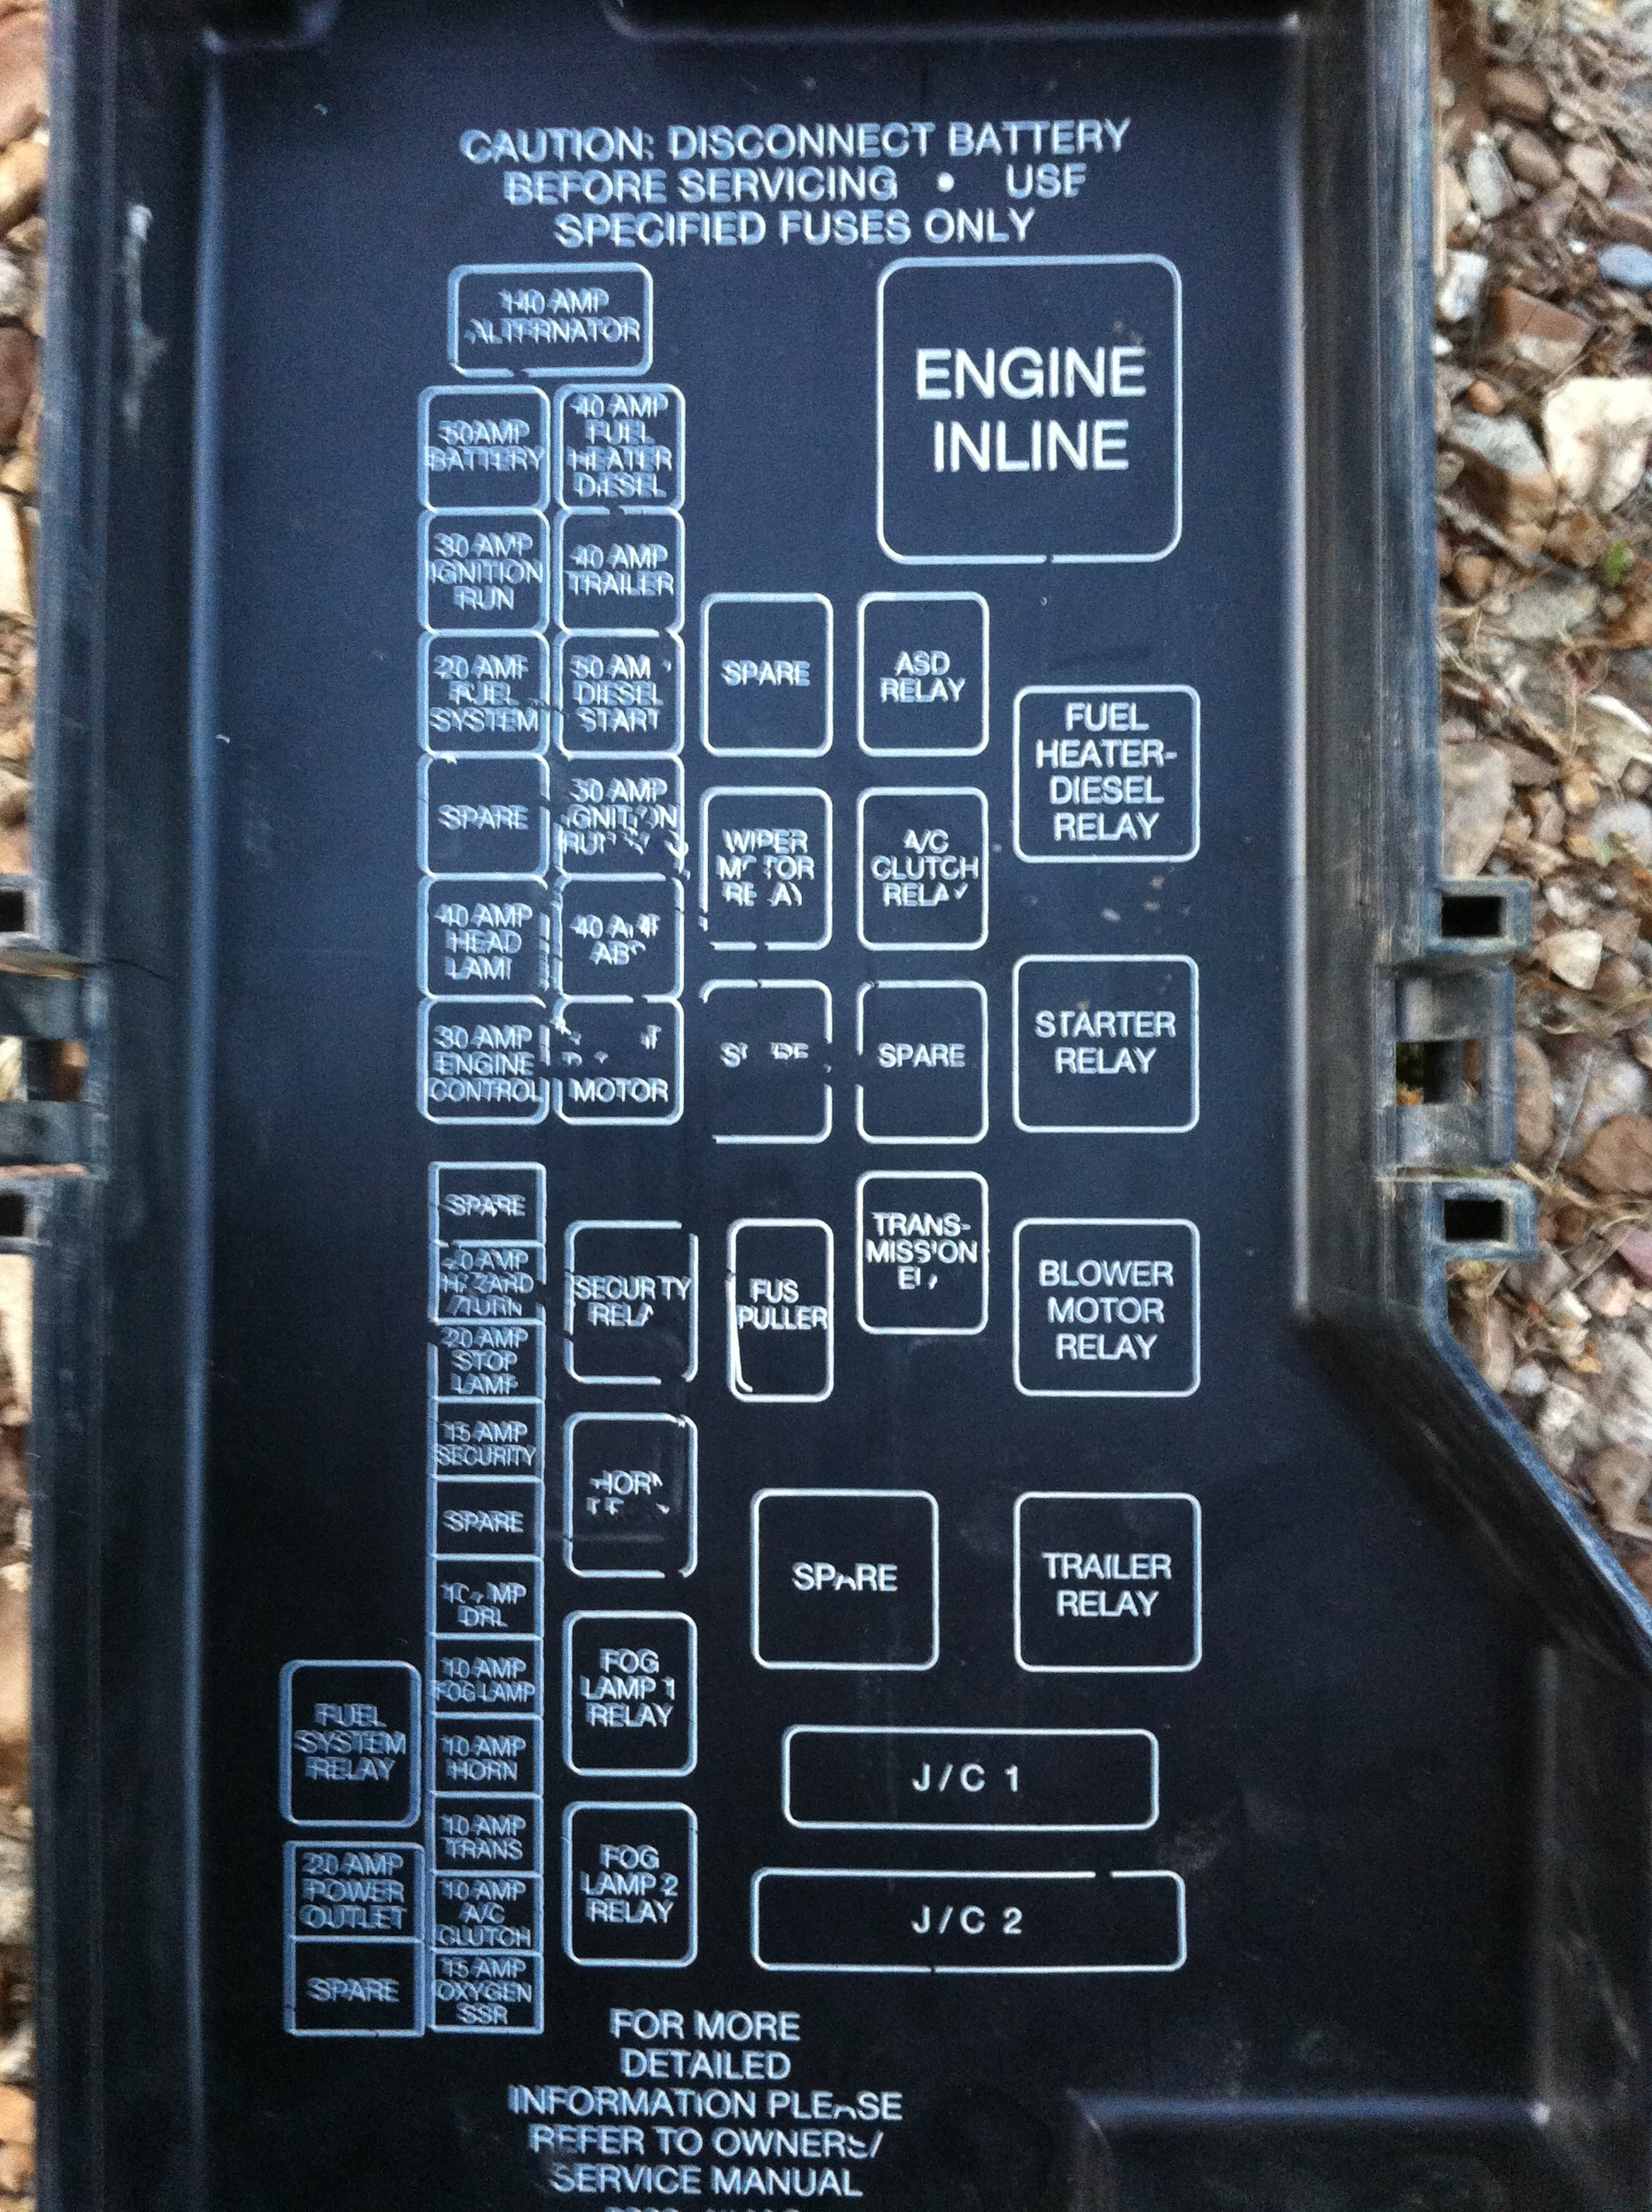 vf_1563] fuse box diagram also 2001 dodge dakota 4 7 engine wiring diagram  schematic wiring  lite kicep sianu emba mohammedshrine librar wiring 101